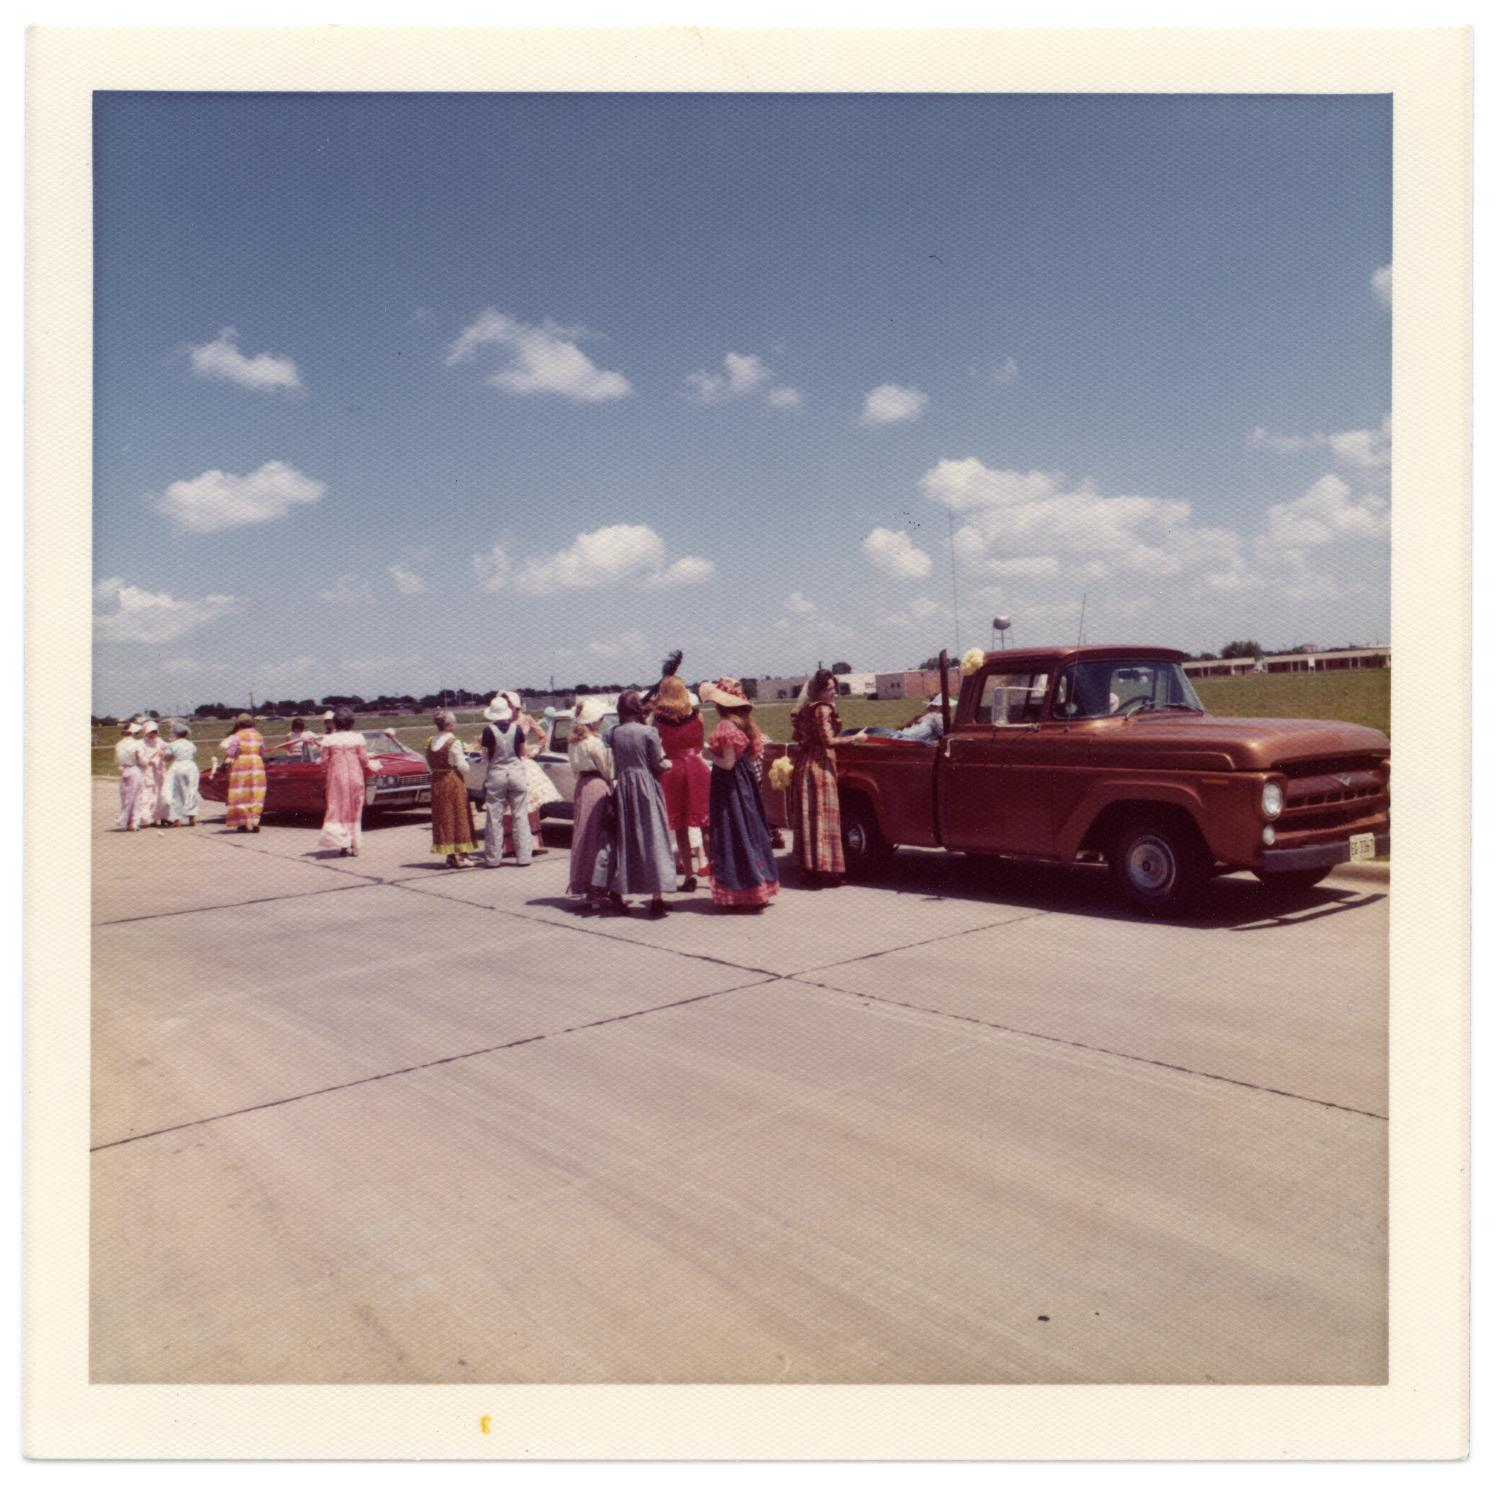 Richardson Centennial Parade, Photograph of a group of people wearing costumes and waiting to participate in the Centennial parade. There are two trucks and one convertible car parked behind them. In the background, there is a grassy field.,